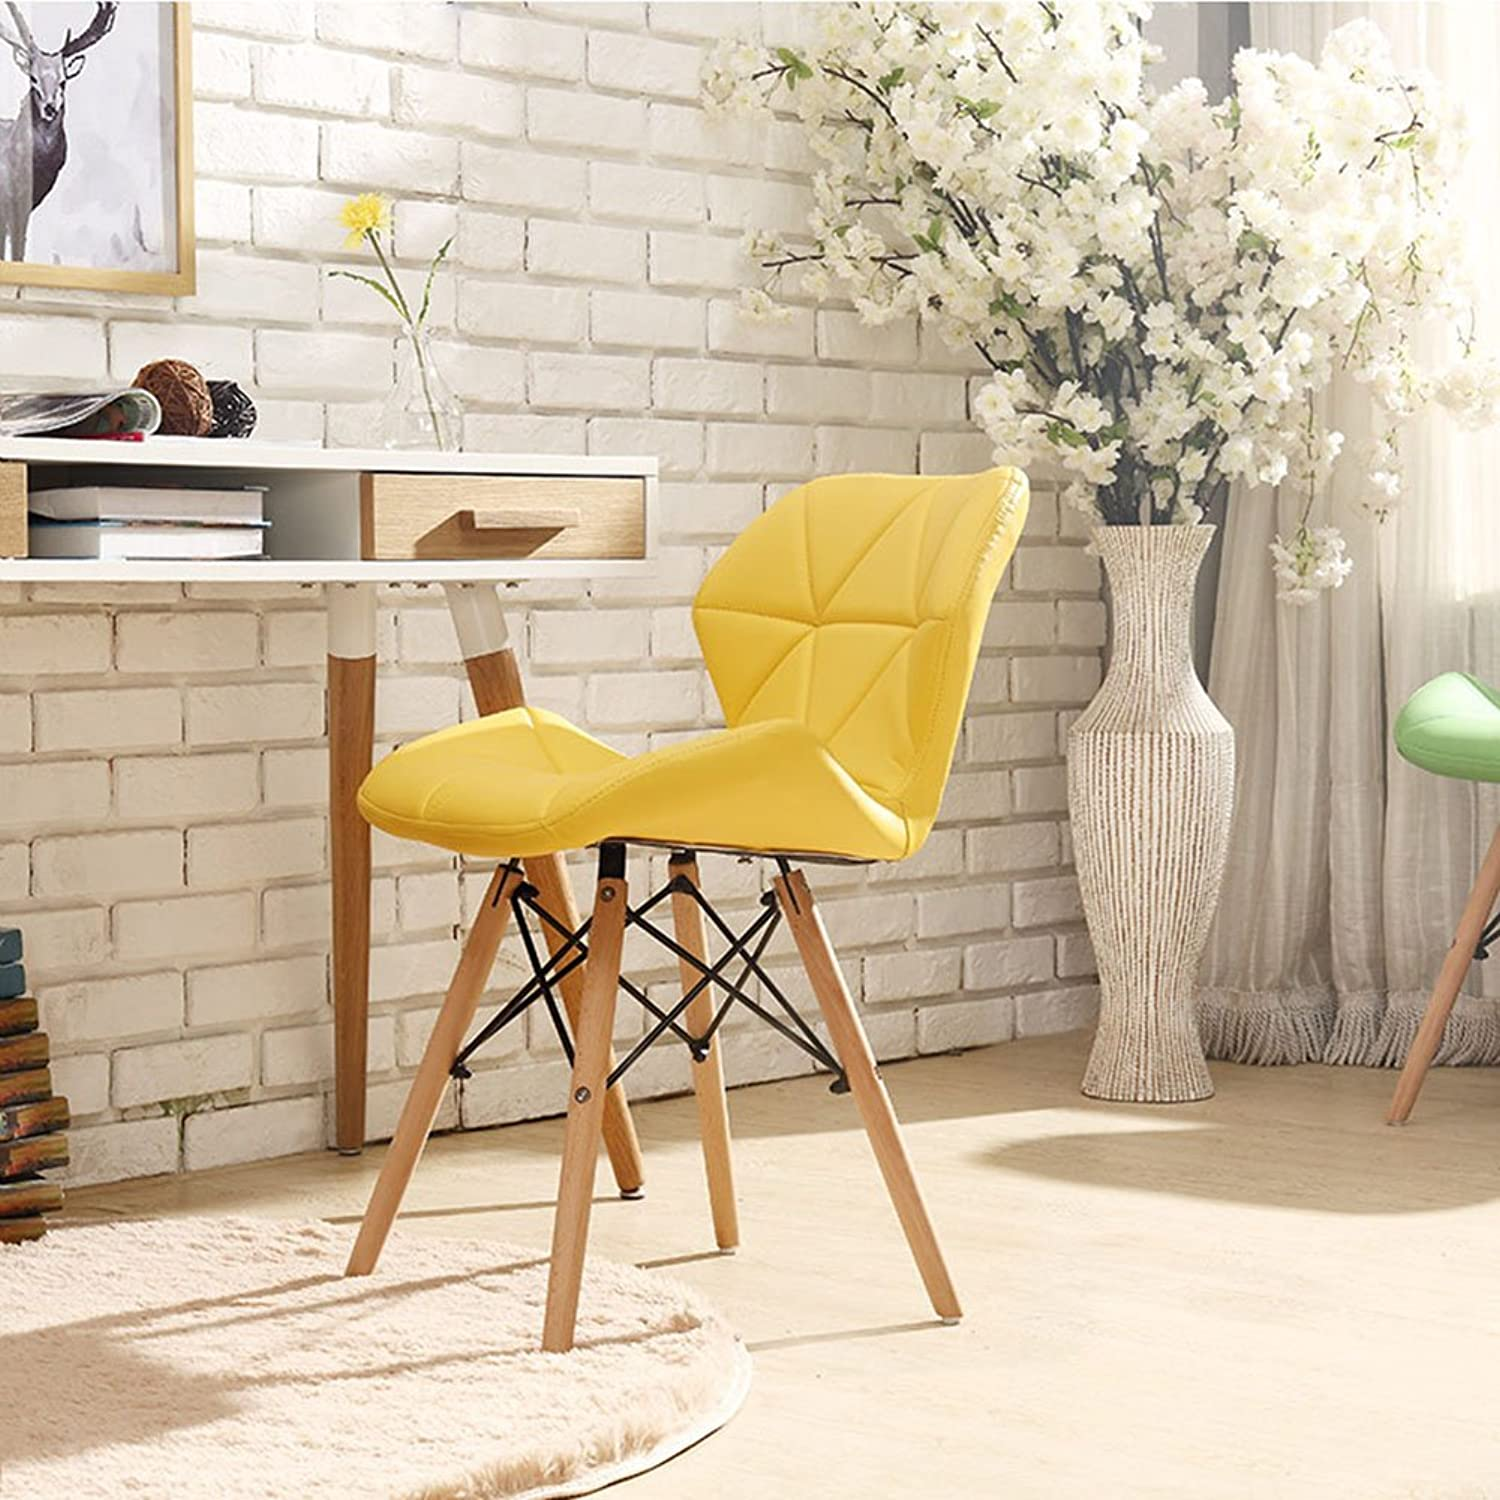 Dining Chairs Seat Chair Desk Chair Household Restaurant Backrest Computer Chair Northern Europe Office Tingting (color   Yellow)